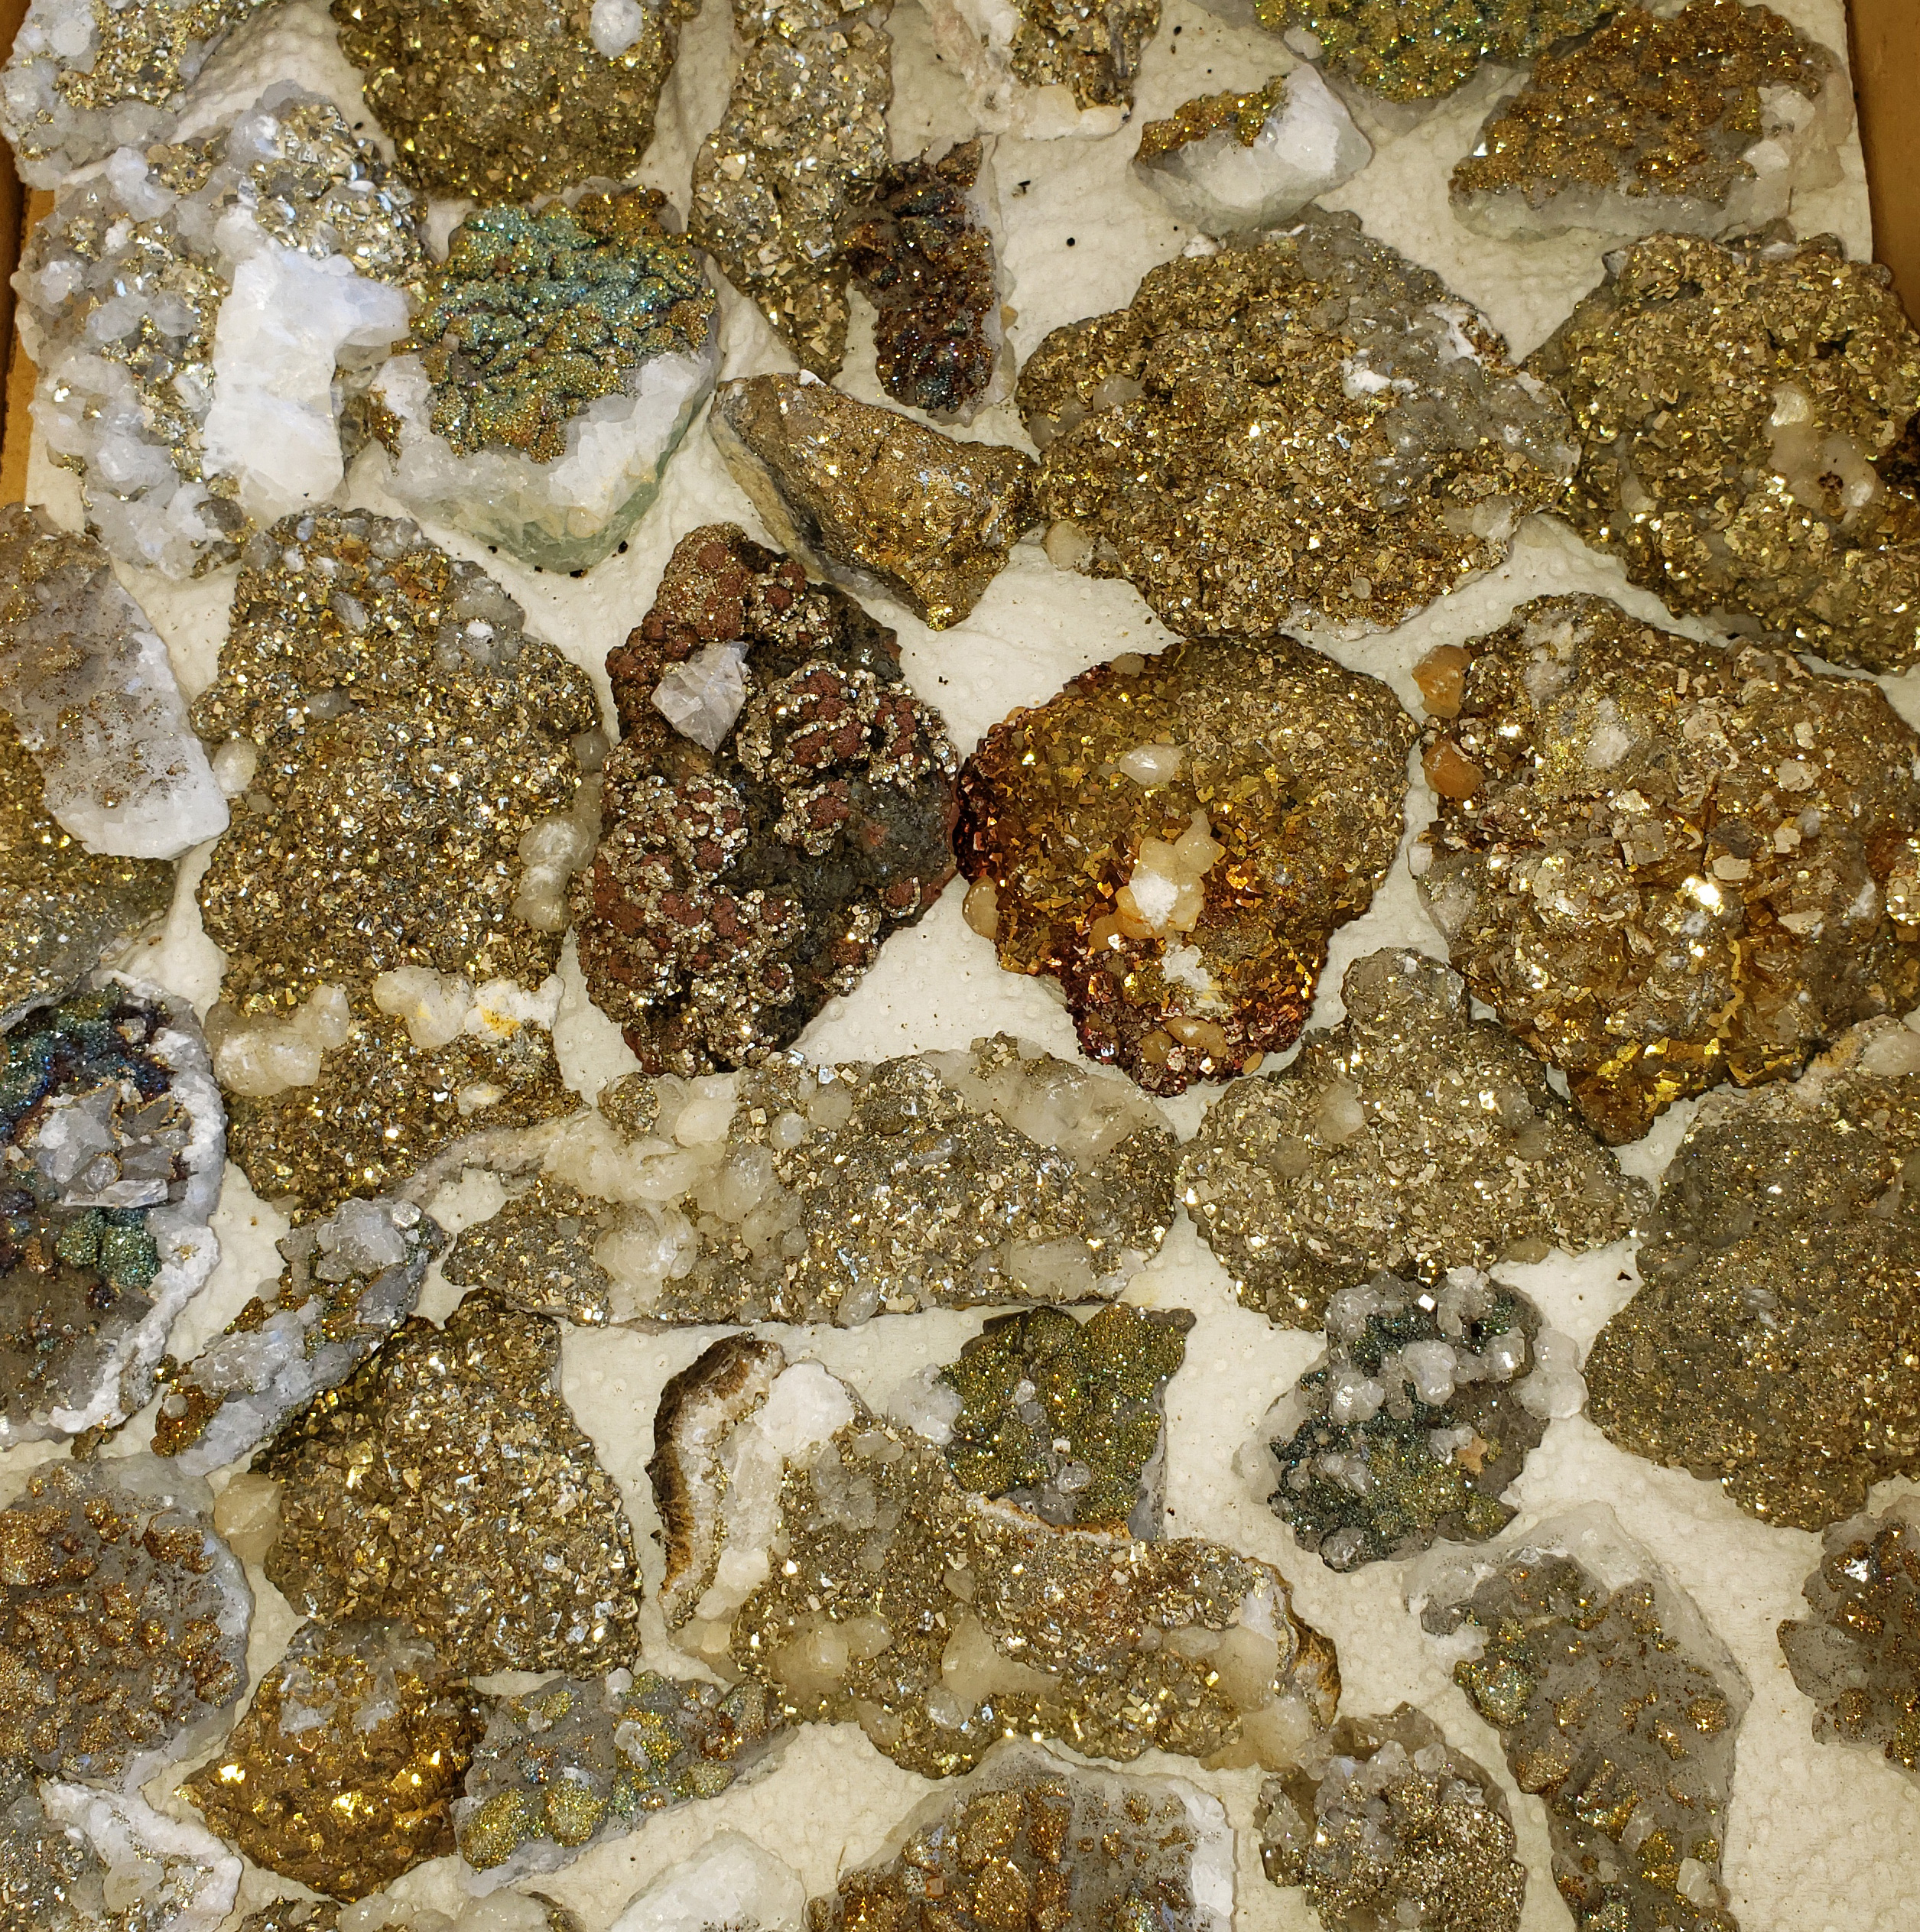 2019 tucson show report - minerals from morocco